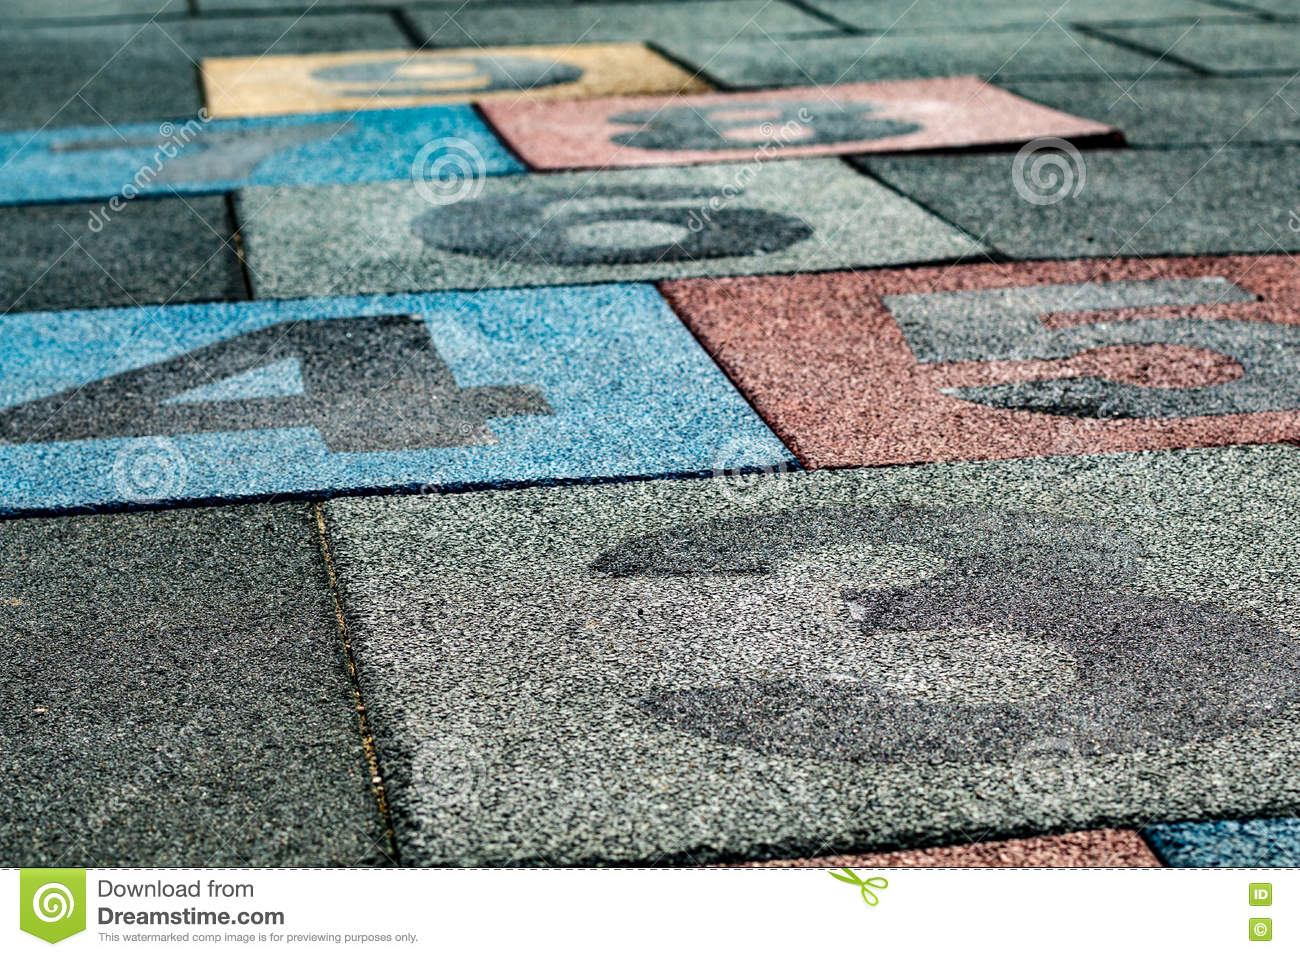 Hopscotch rubber playground flooring stock image image of hopscotch rubber playground flooring dailygadgetfo Images